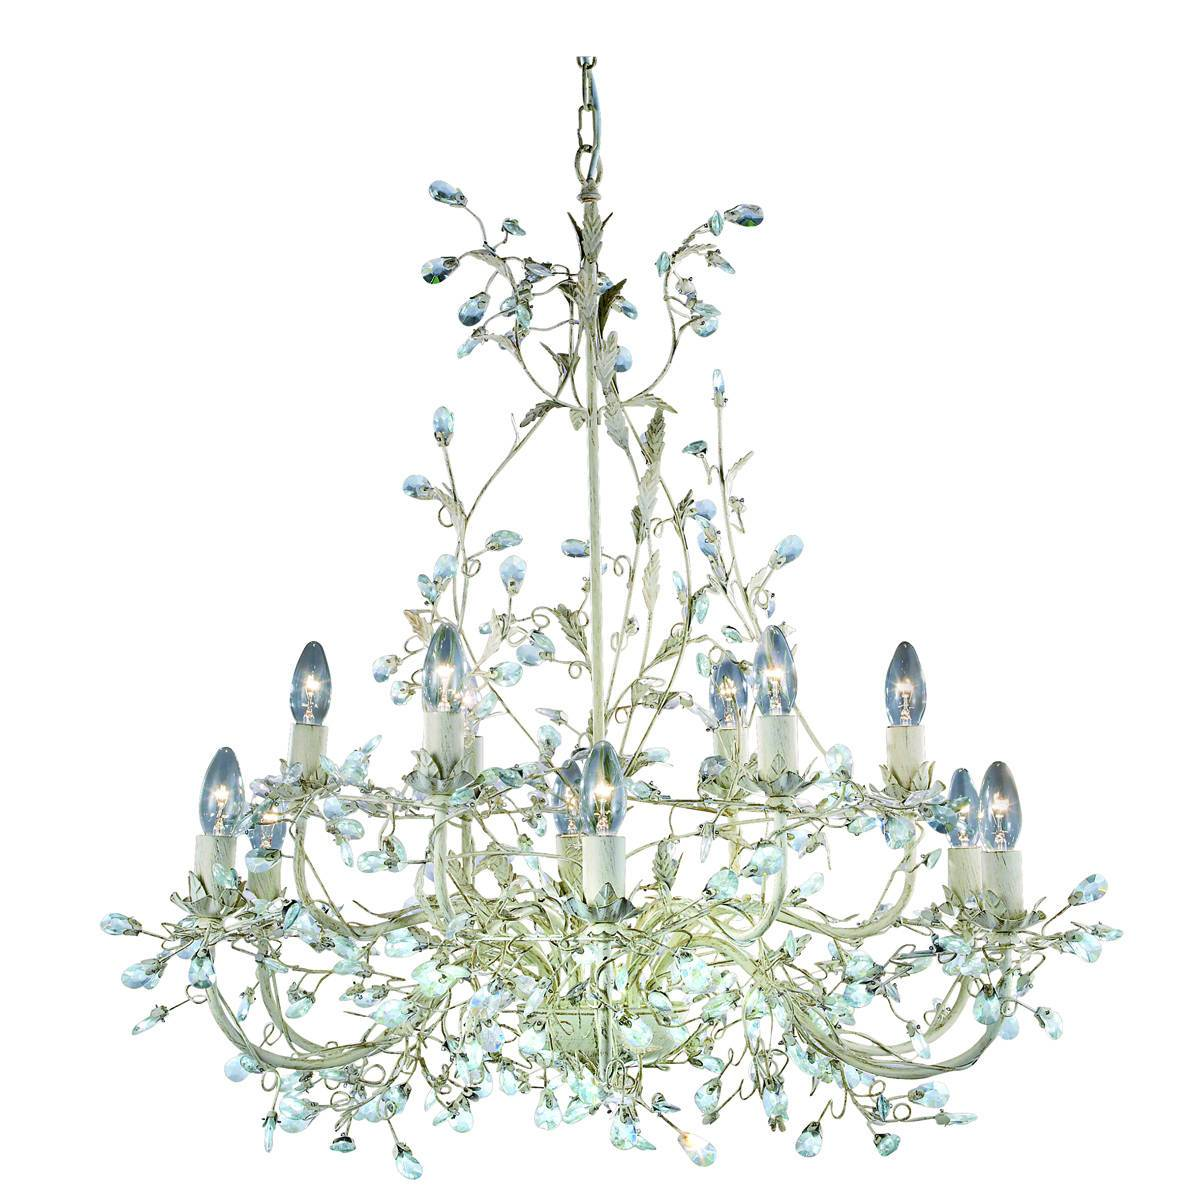 12 Light Multi Arm Ceiling Pendant Gold, Cream With Crystals Floral Leaves Design, E14